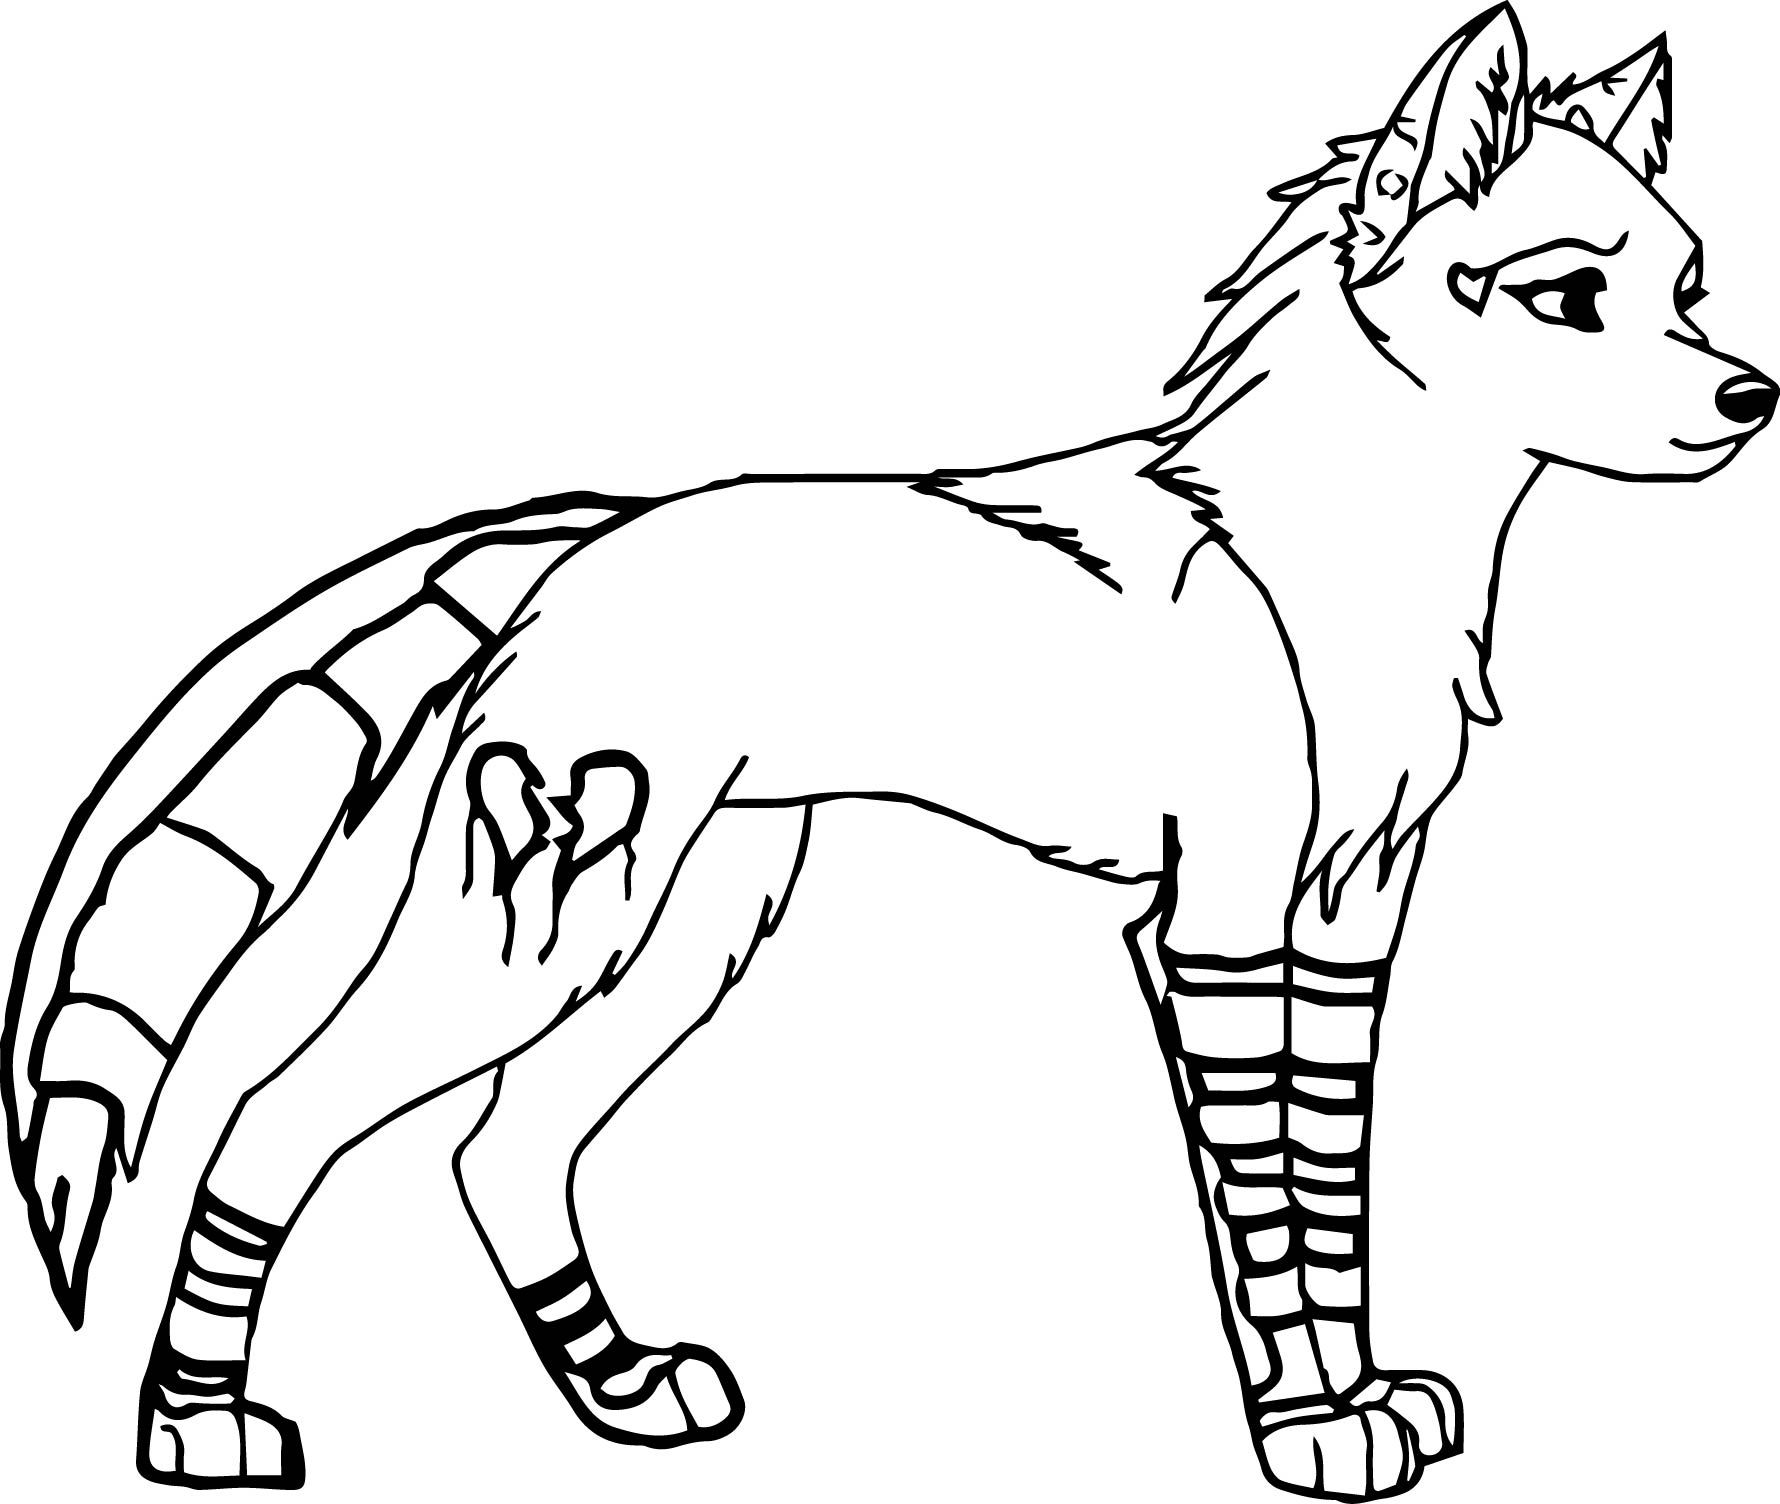 coloring pages of wolves free printable wolf coloring pages for kids of coloring pages wolves